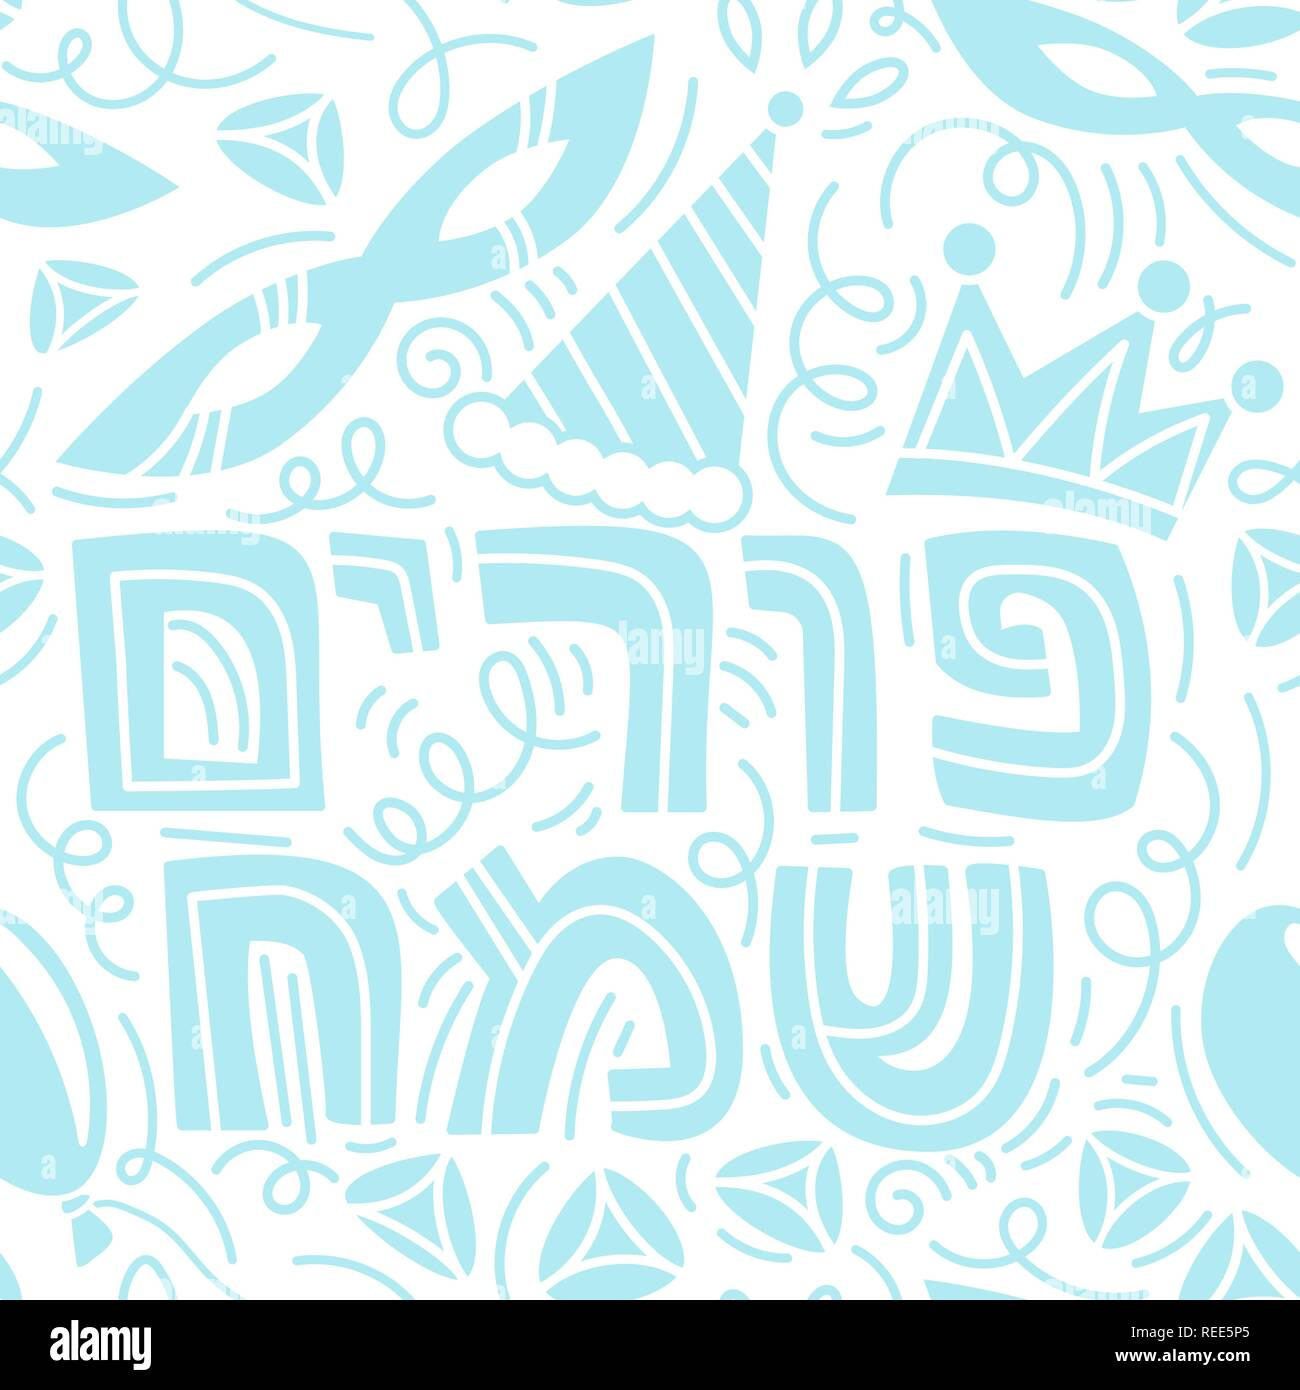 Purim seamless pattern with carnival mask, hats, crown, hamantaschen and Hebrew text Happy Purim. Monochrome vector illustration in hand drawn doodles stiyle. Blue background - Stock Image